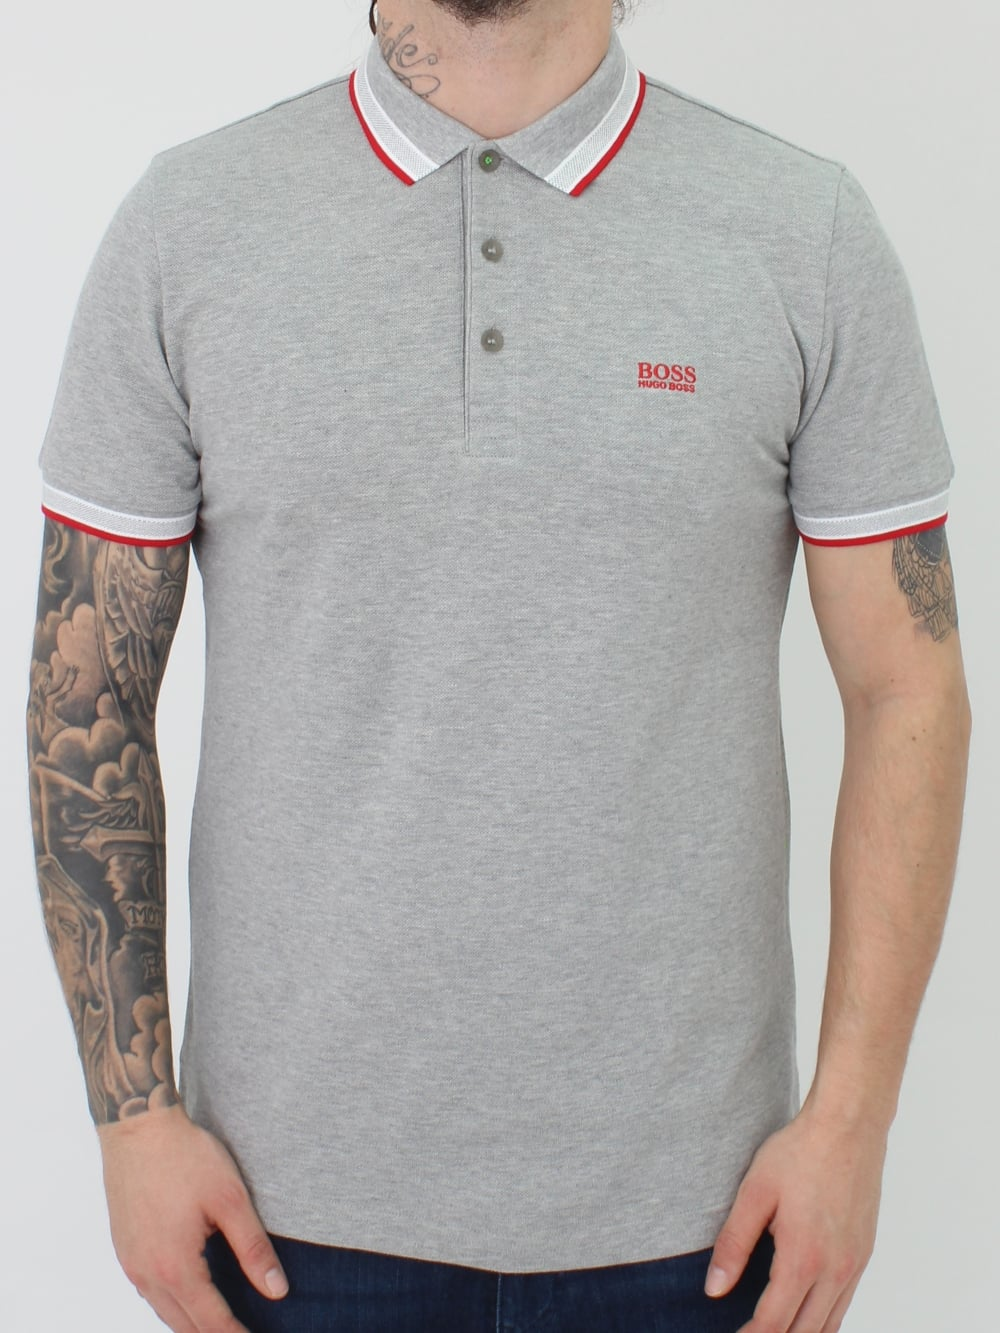 8884f2b8e Hugo Boss Paddy Polo in Open Grey - Northern Threads